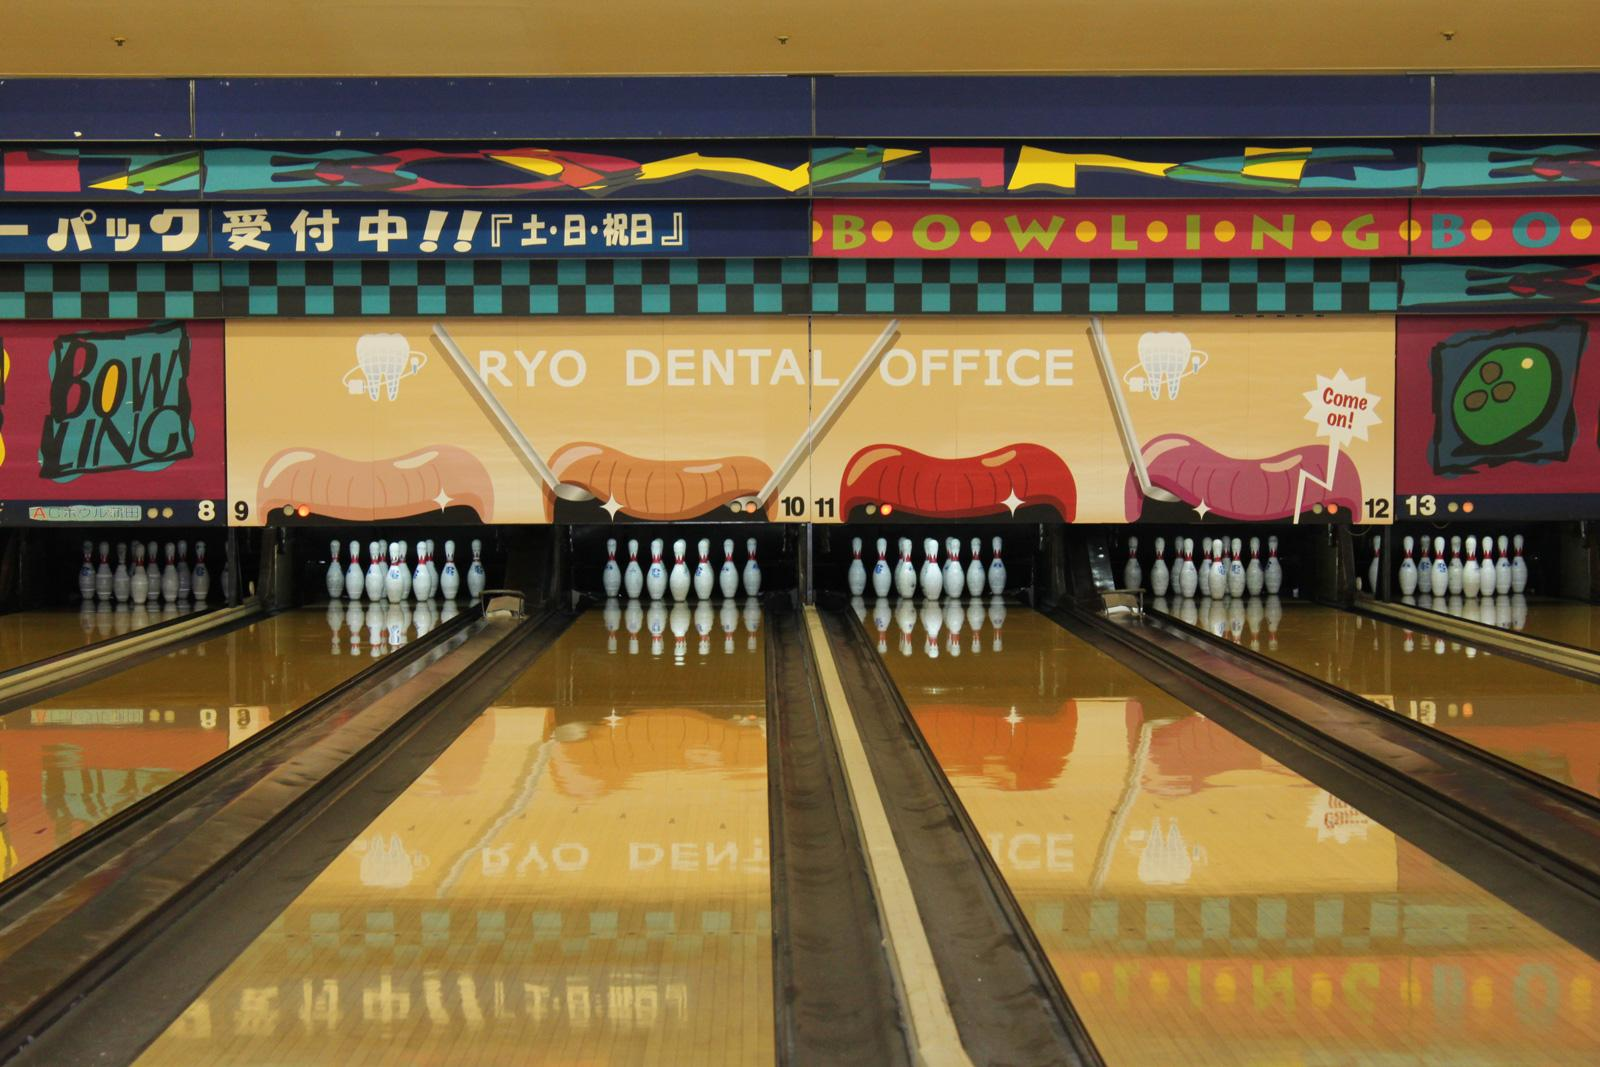 Ryo dental clinic Ambient Ad -  Bowling